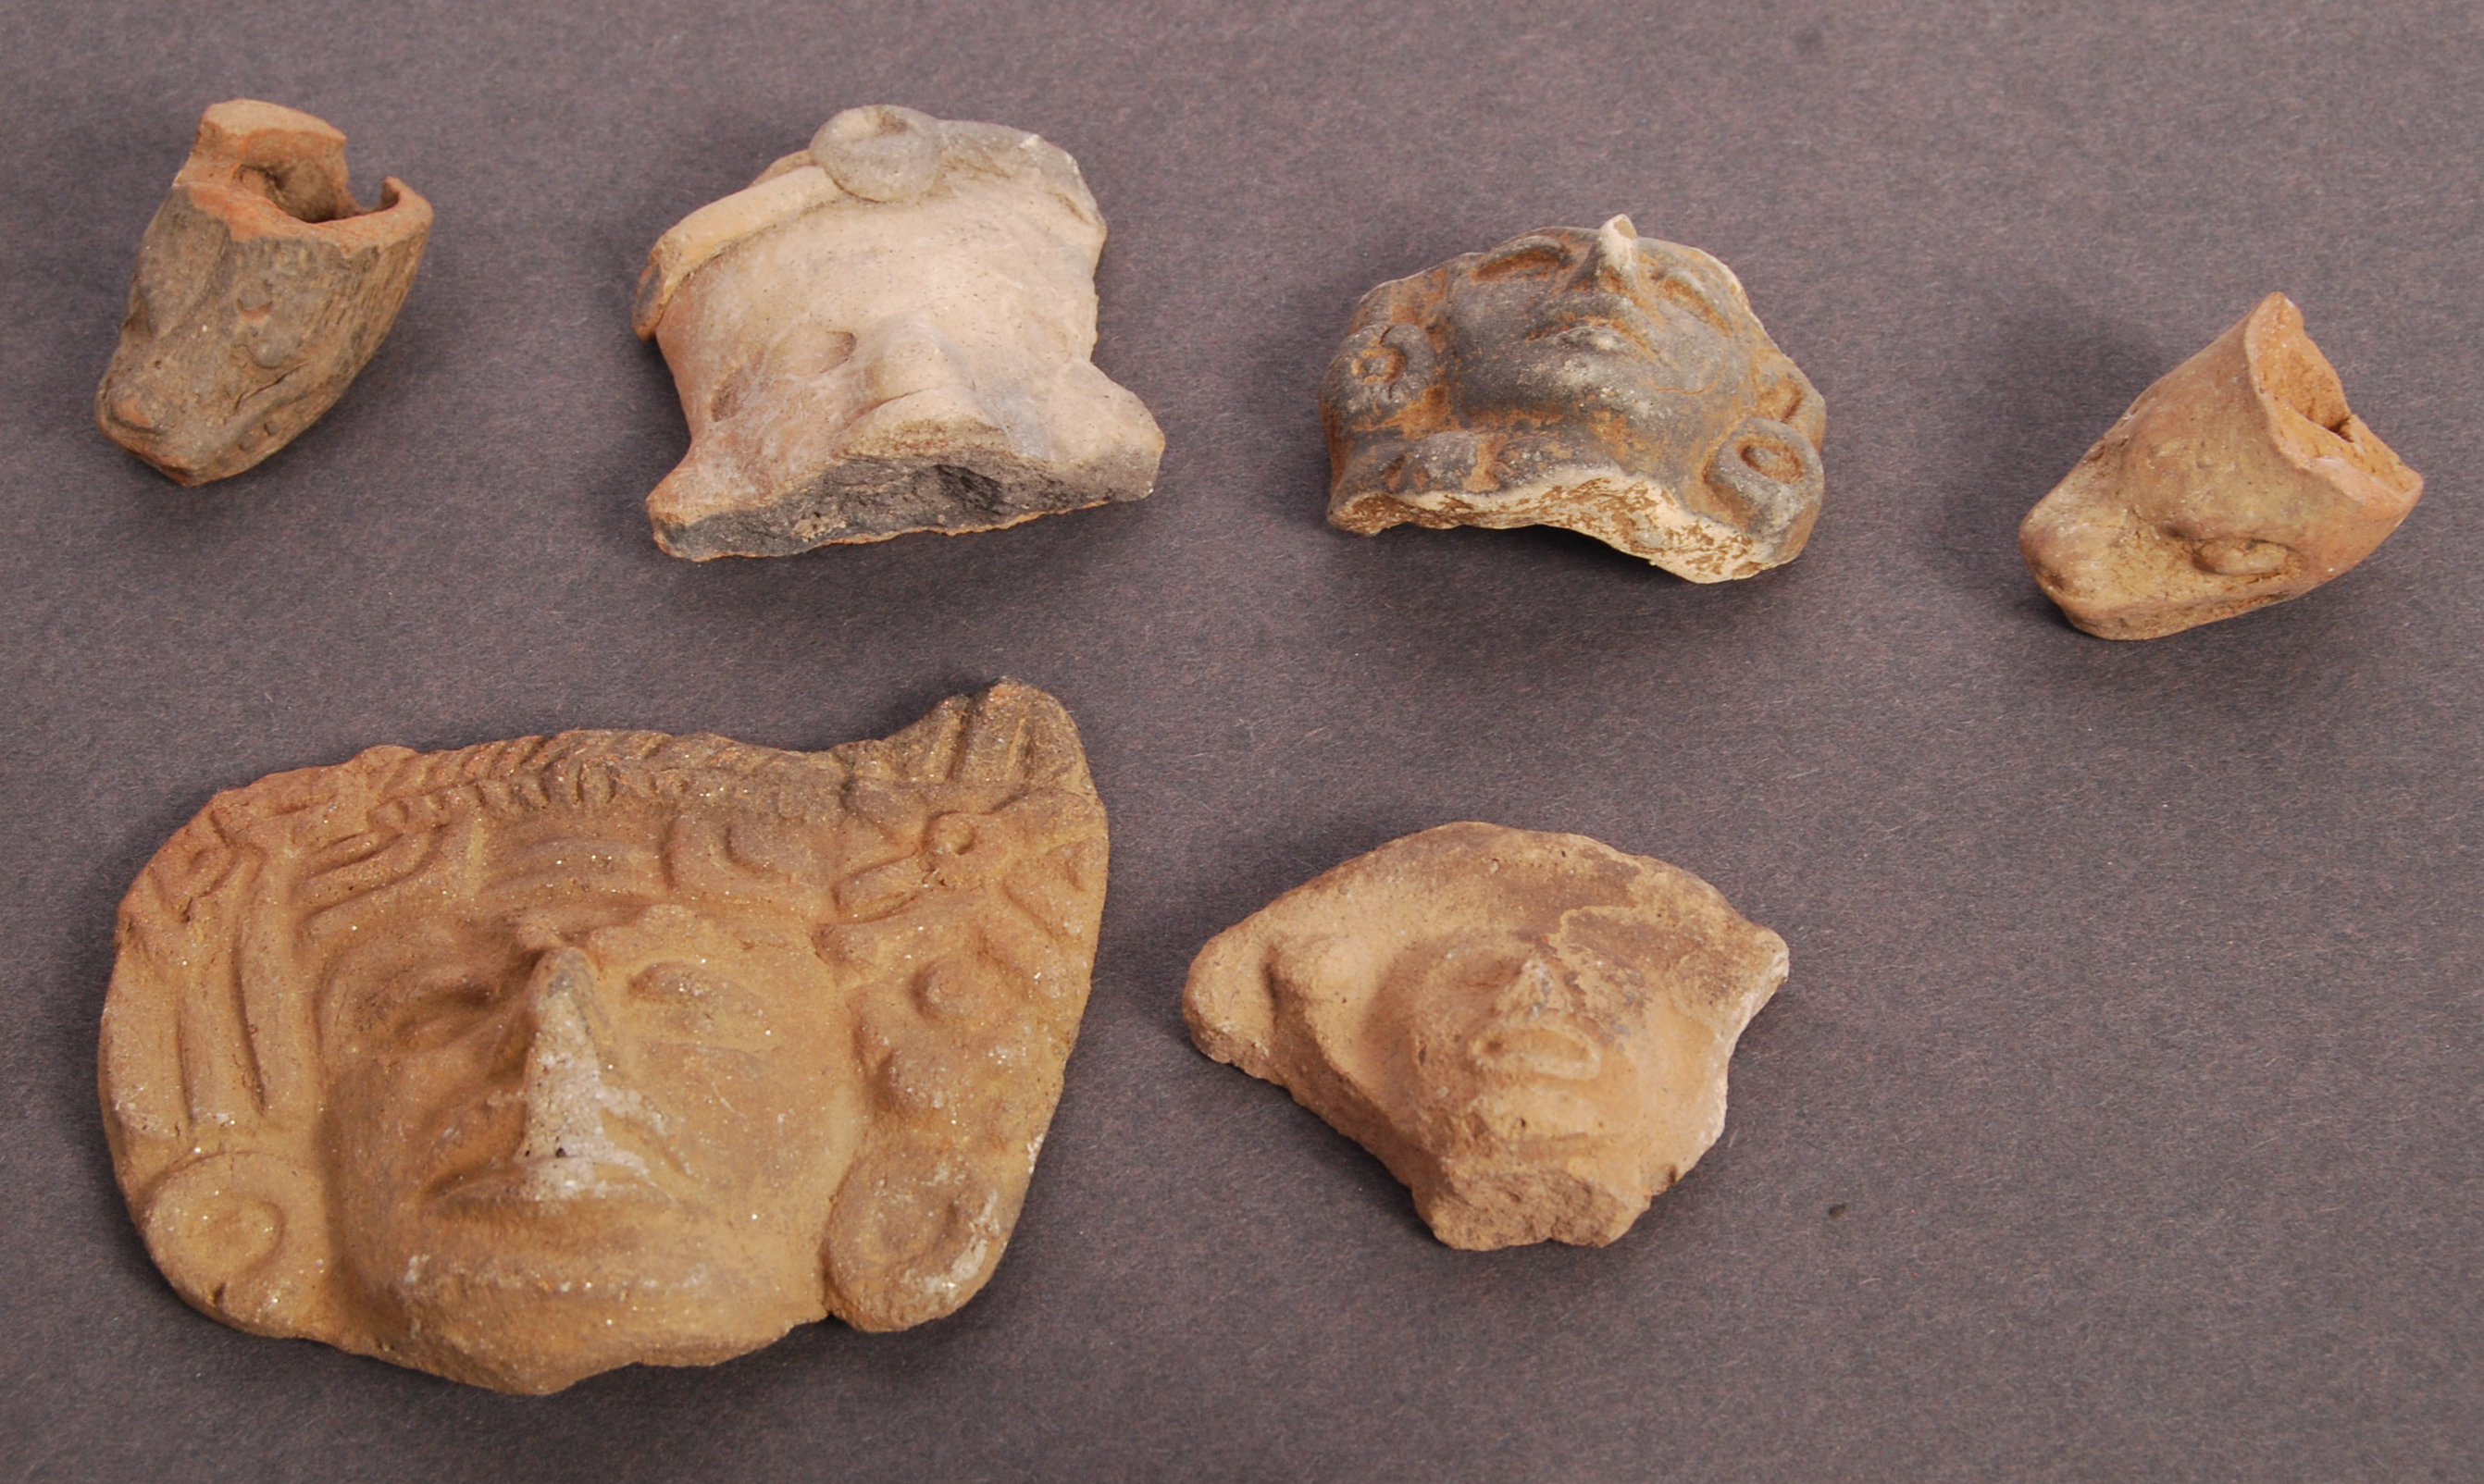 Lot 431 - ASSOORTED PRE COLUMBIAN INCA POTTERY RELIC HEADS